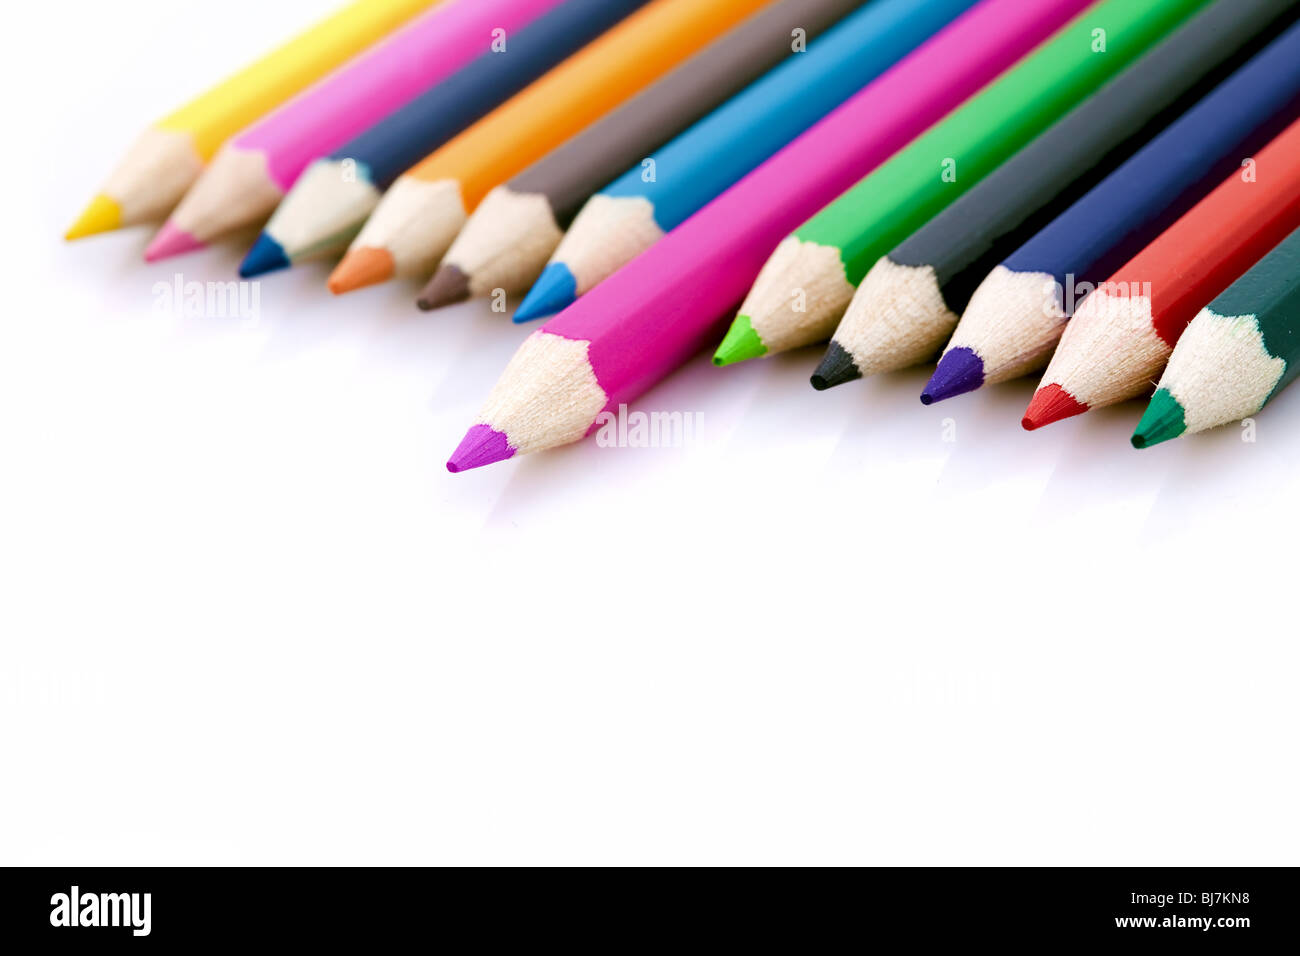 Winner or success metaphor with colorful pencils - Stock Image